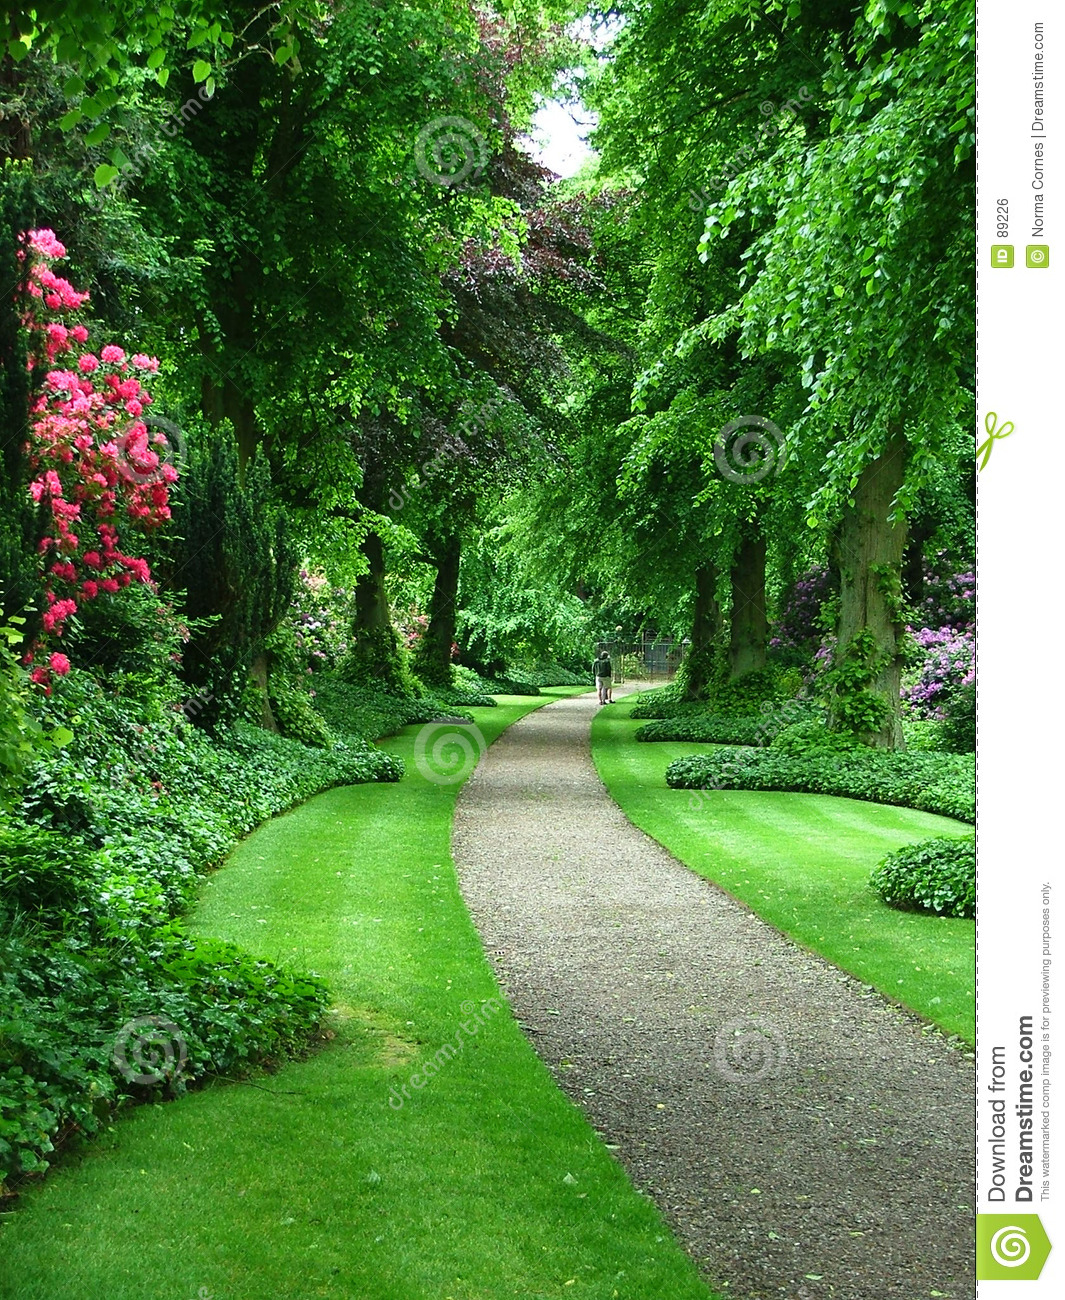 Garden Path Royalty Free Stock Image - Image: 89226